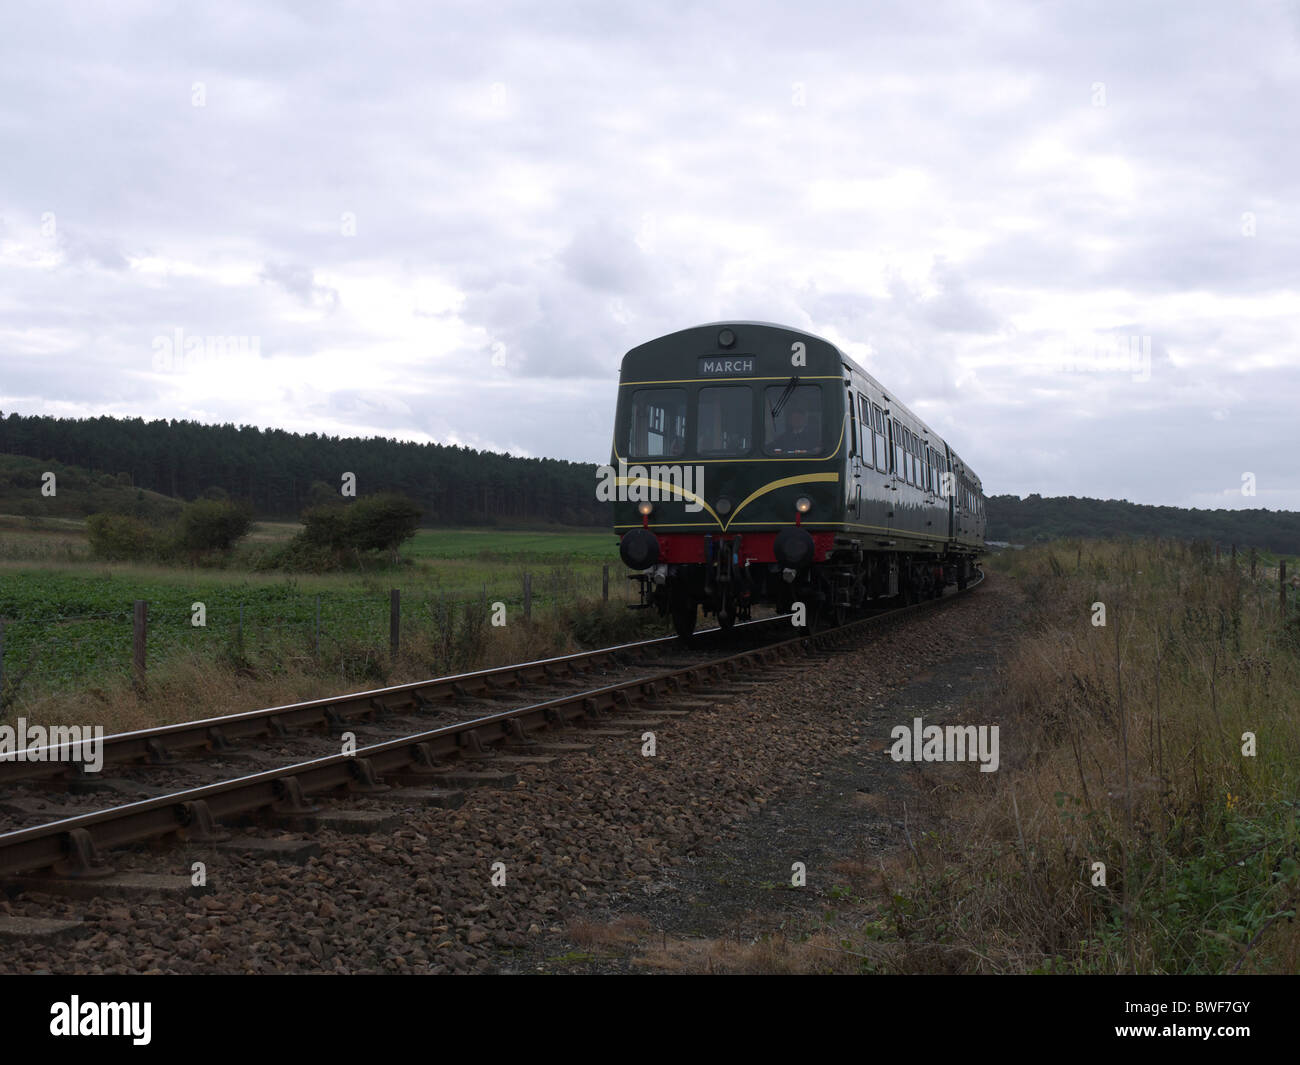 DMU class 101 no:101681 on the North Norfolk Railway September 2010 - Stock Image